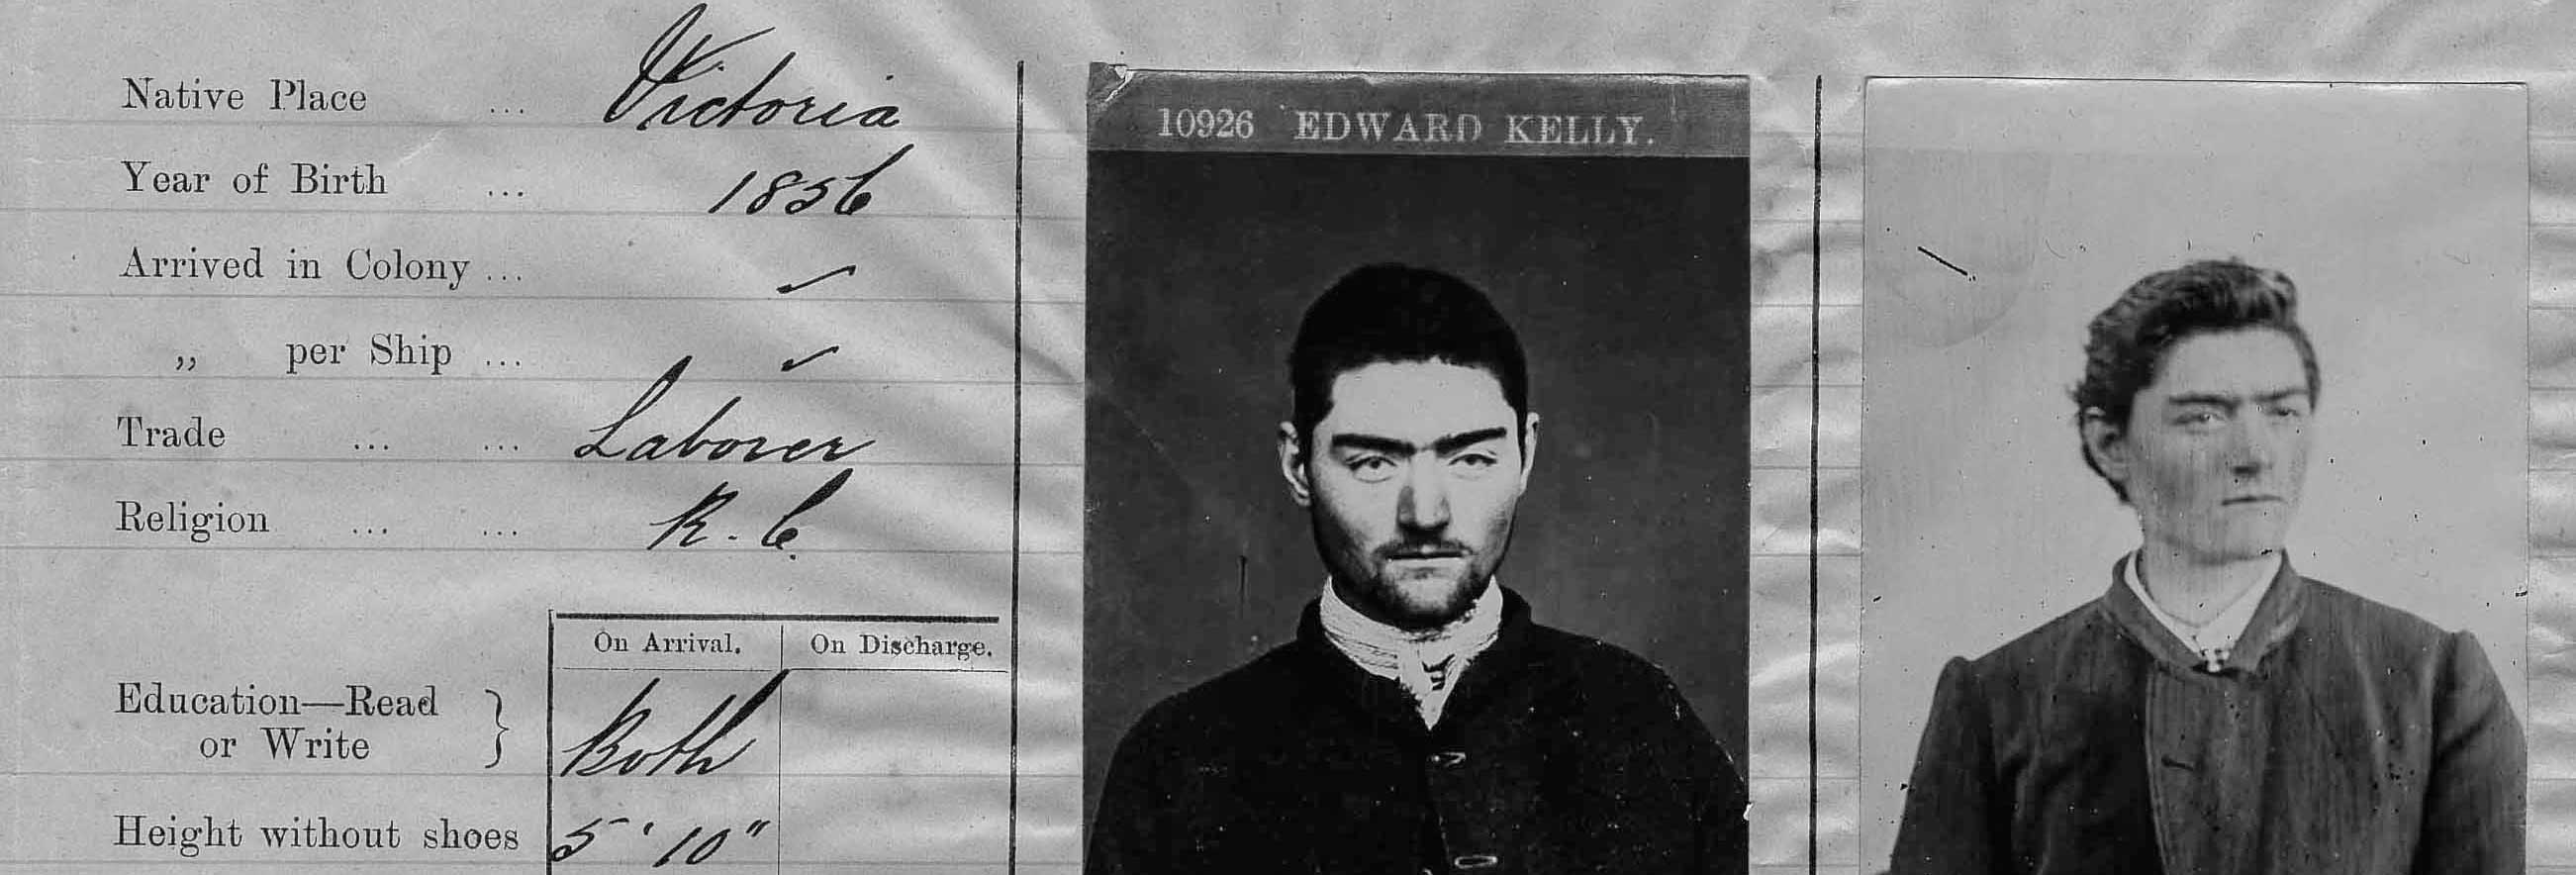 Old Ned Kelly Archive